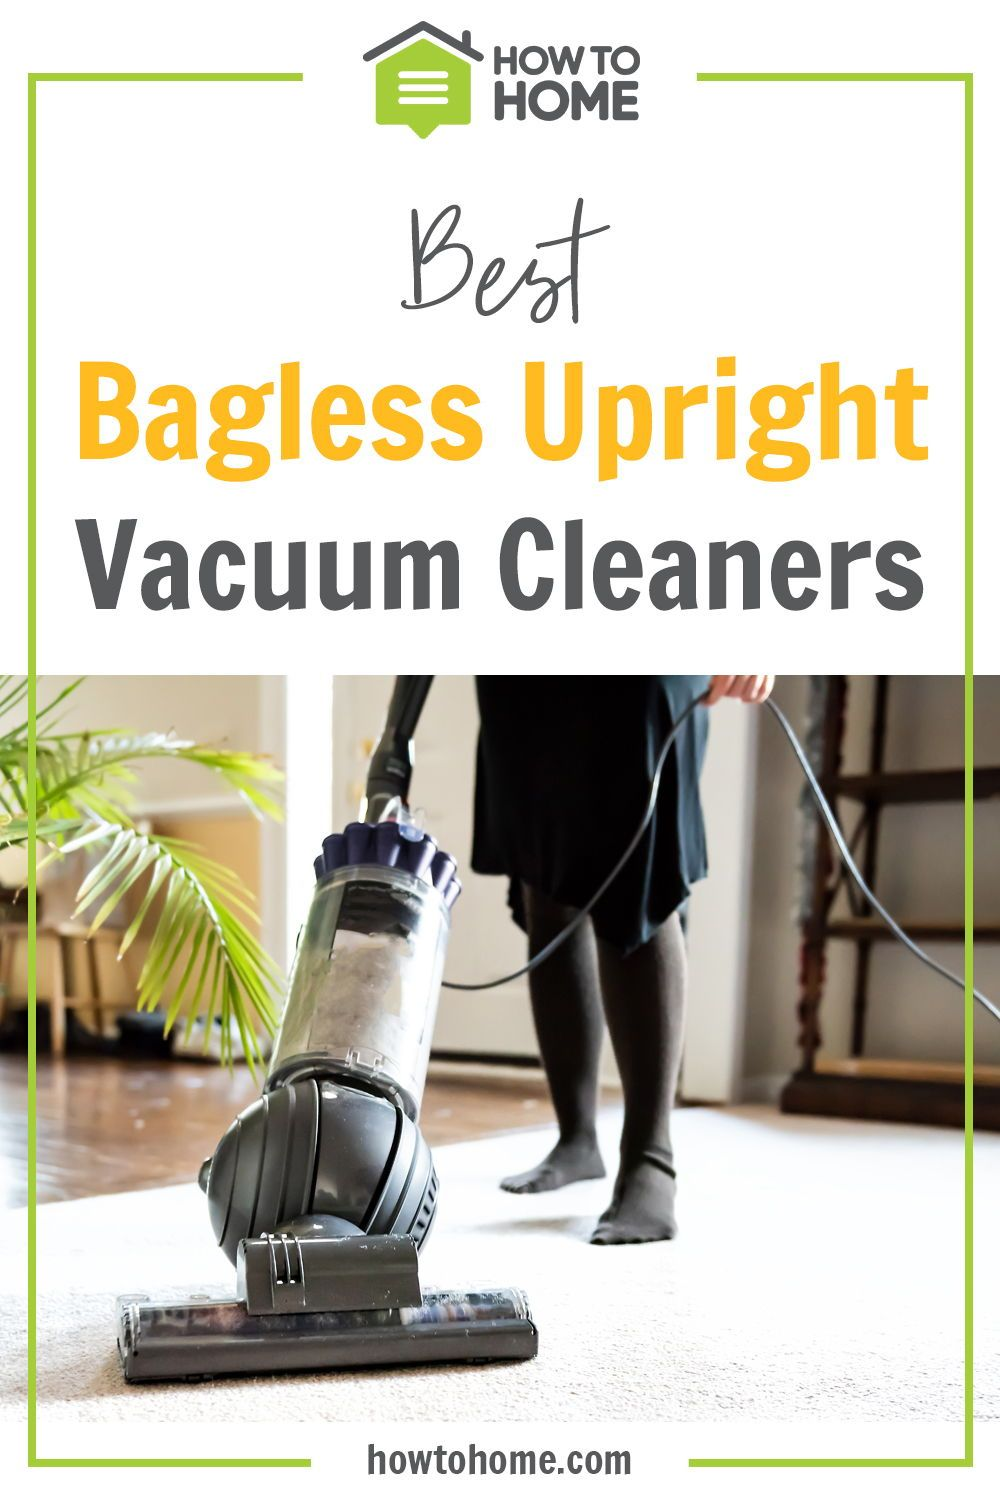 Bagless Upright Vacuums Are Some Of The Most Popular Vacuums On The Market Today They Are Known For The Vacuum Cleaner Upright Vacuums Upright Vacuum Cleaners